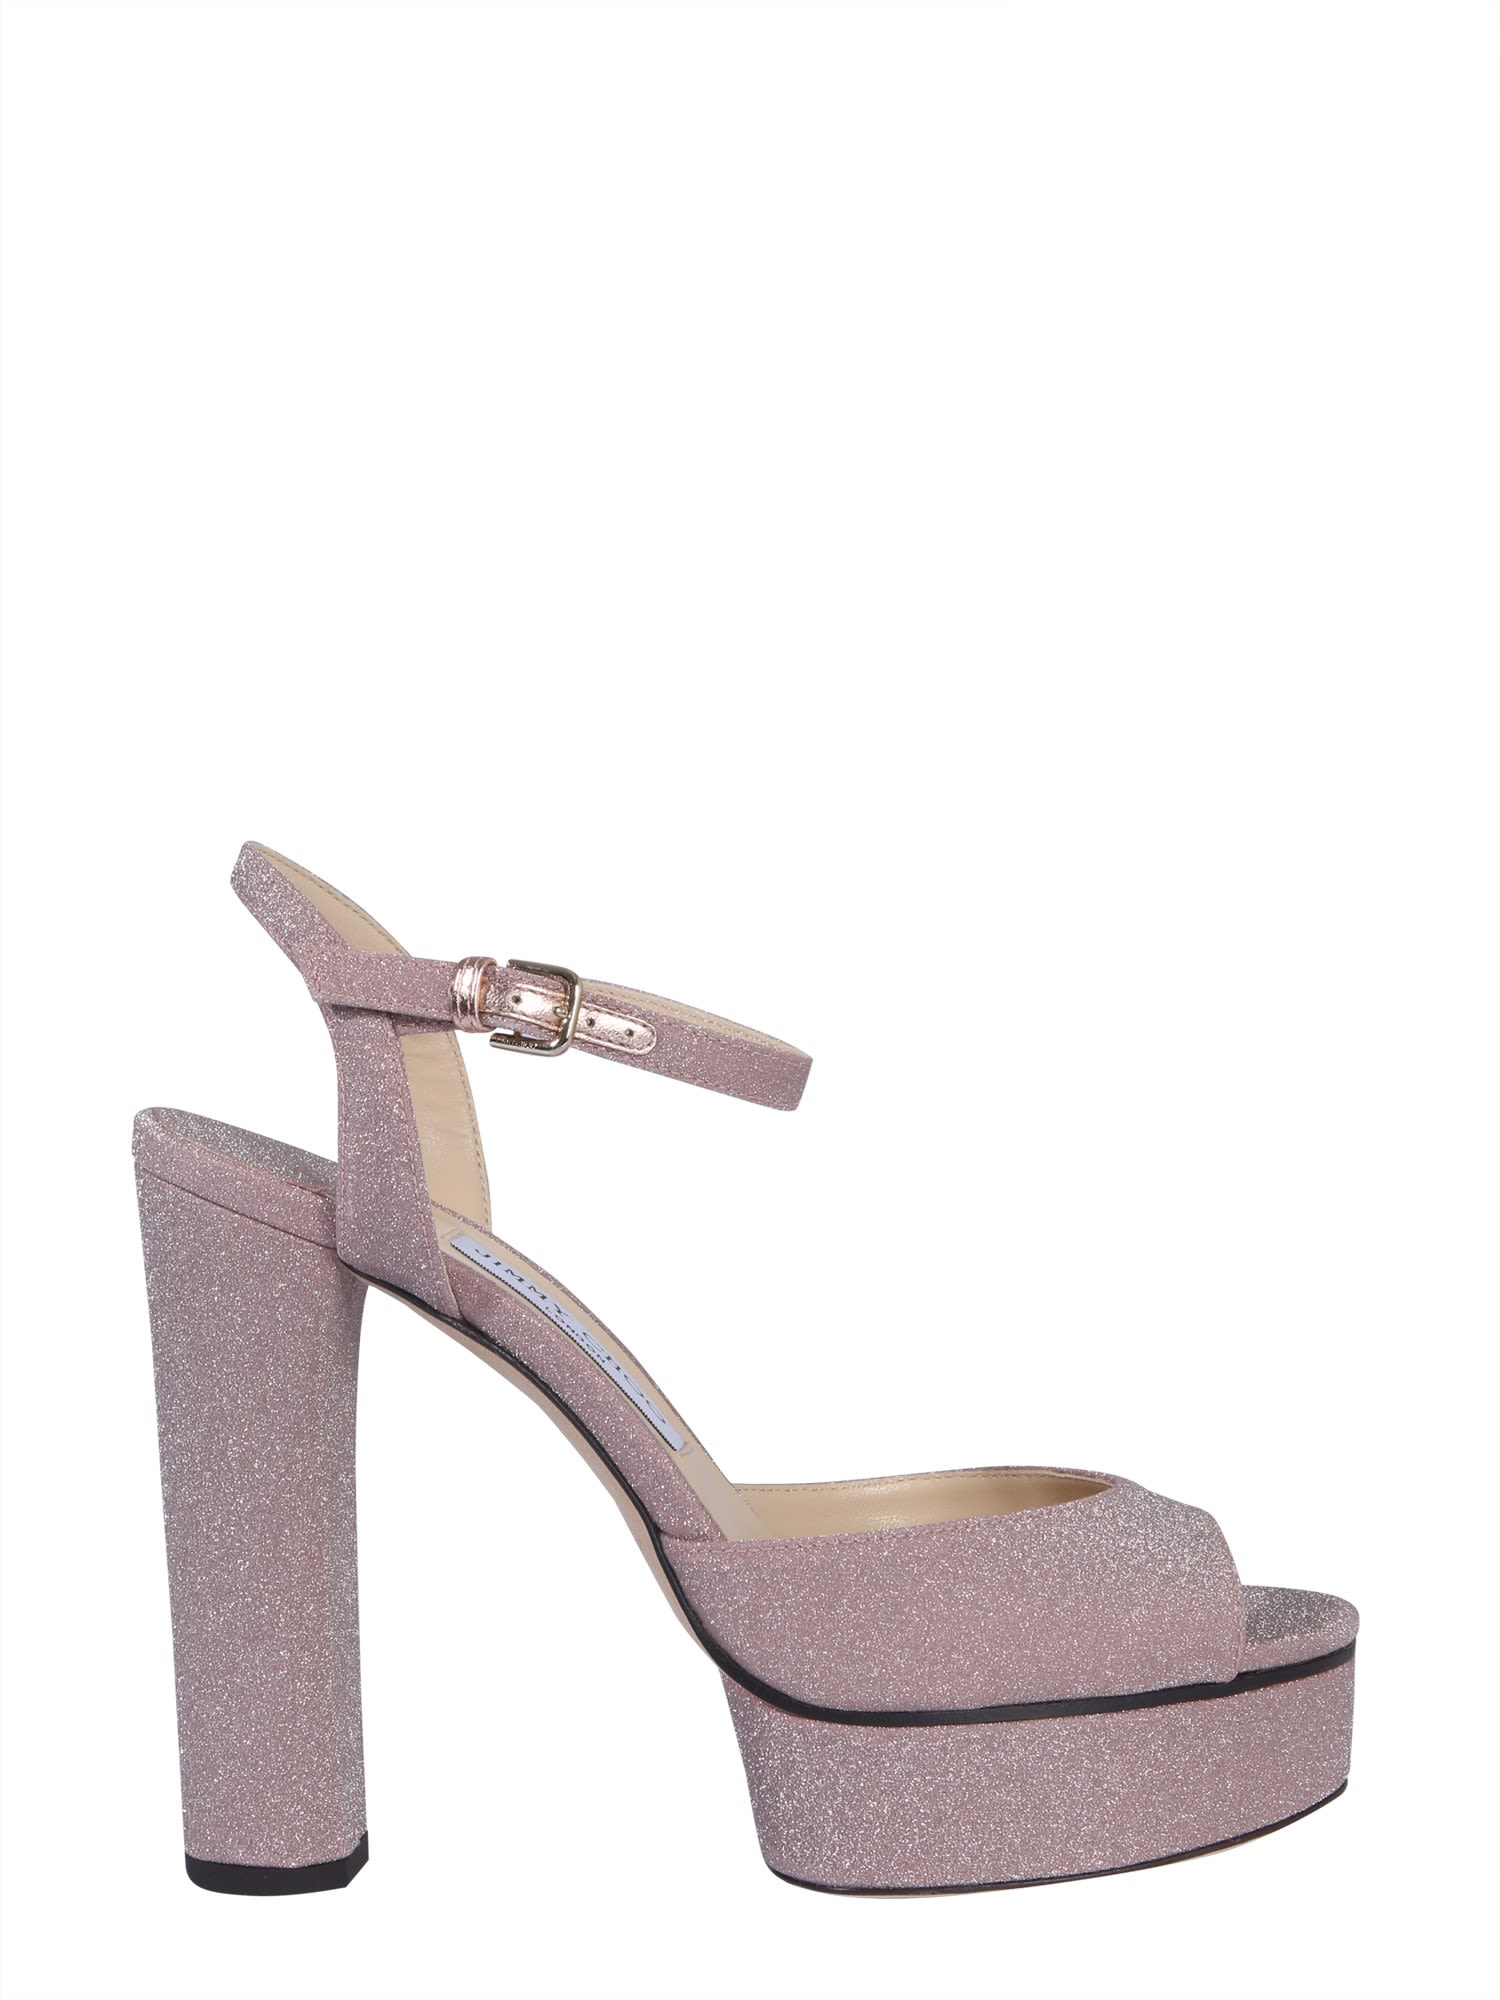 Buy Jimmy Choo Peachy Sandals online, shop Jimmy Choo shoes with free shipping